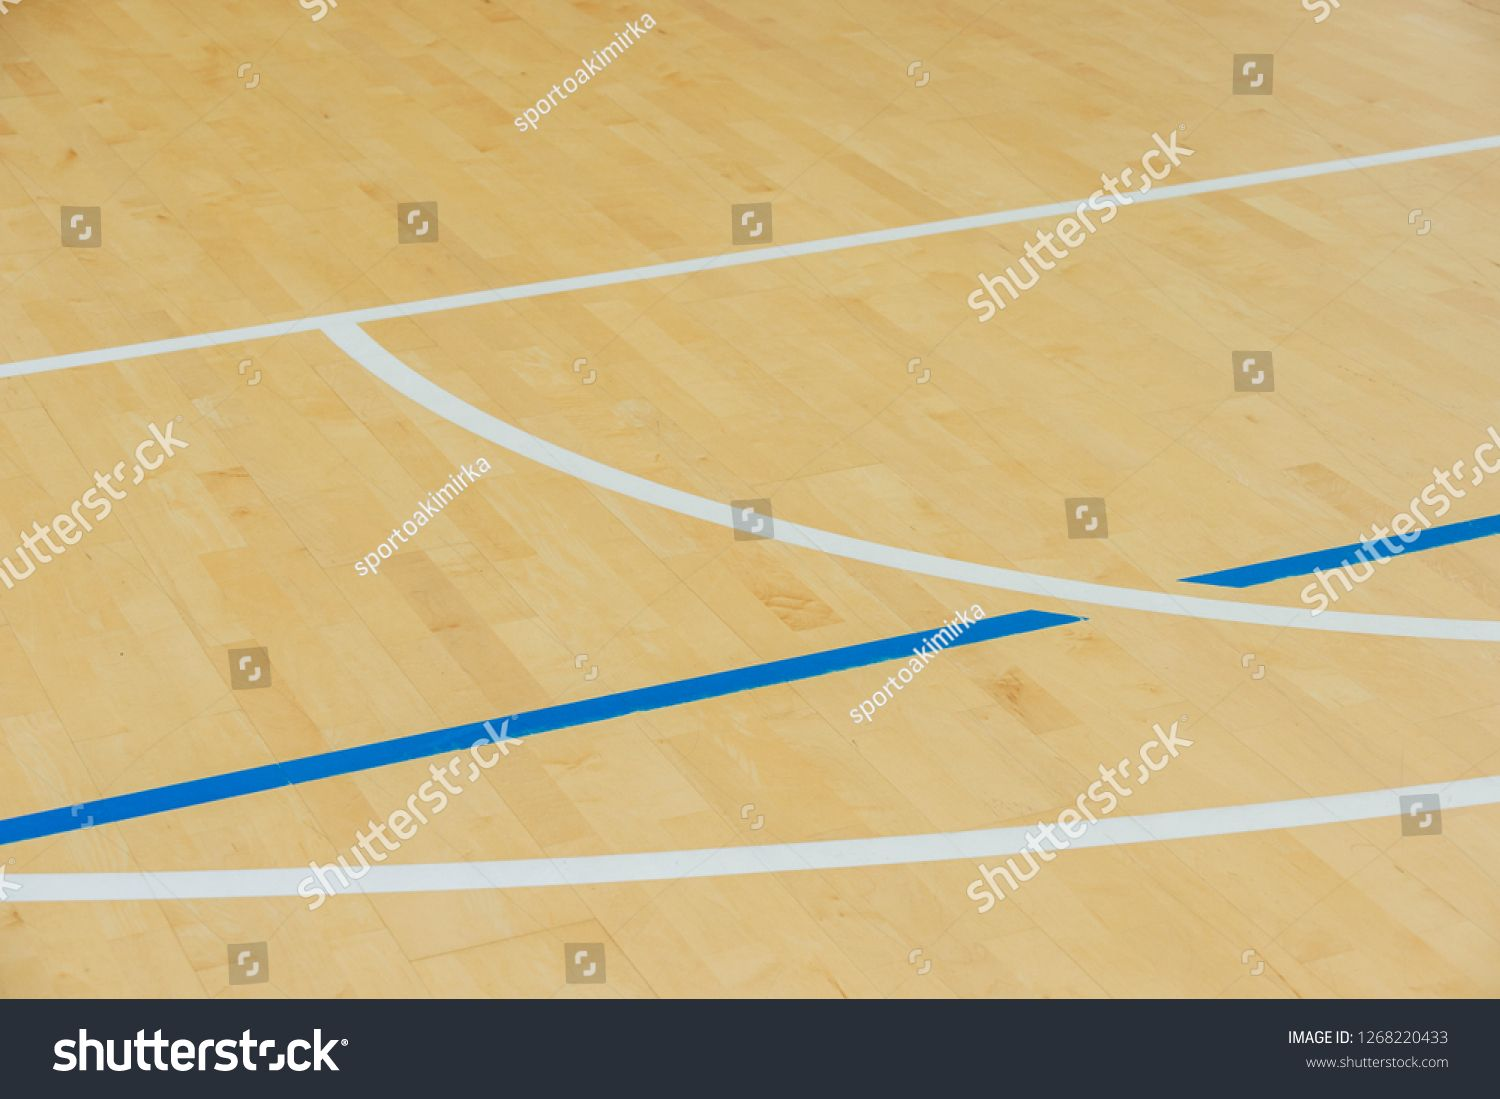 Wooden Floor Volleyball Basketball Badminton Futsal Handball Court With Light Effect Wooden Floor Of Sports Hall With Marking Sport Hall Handball Badminton